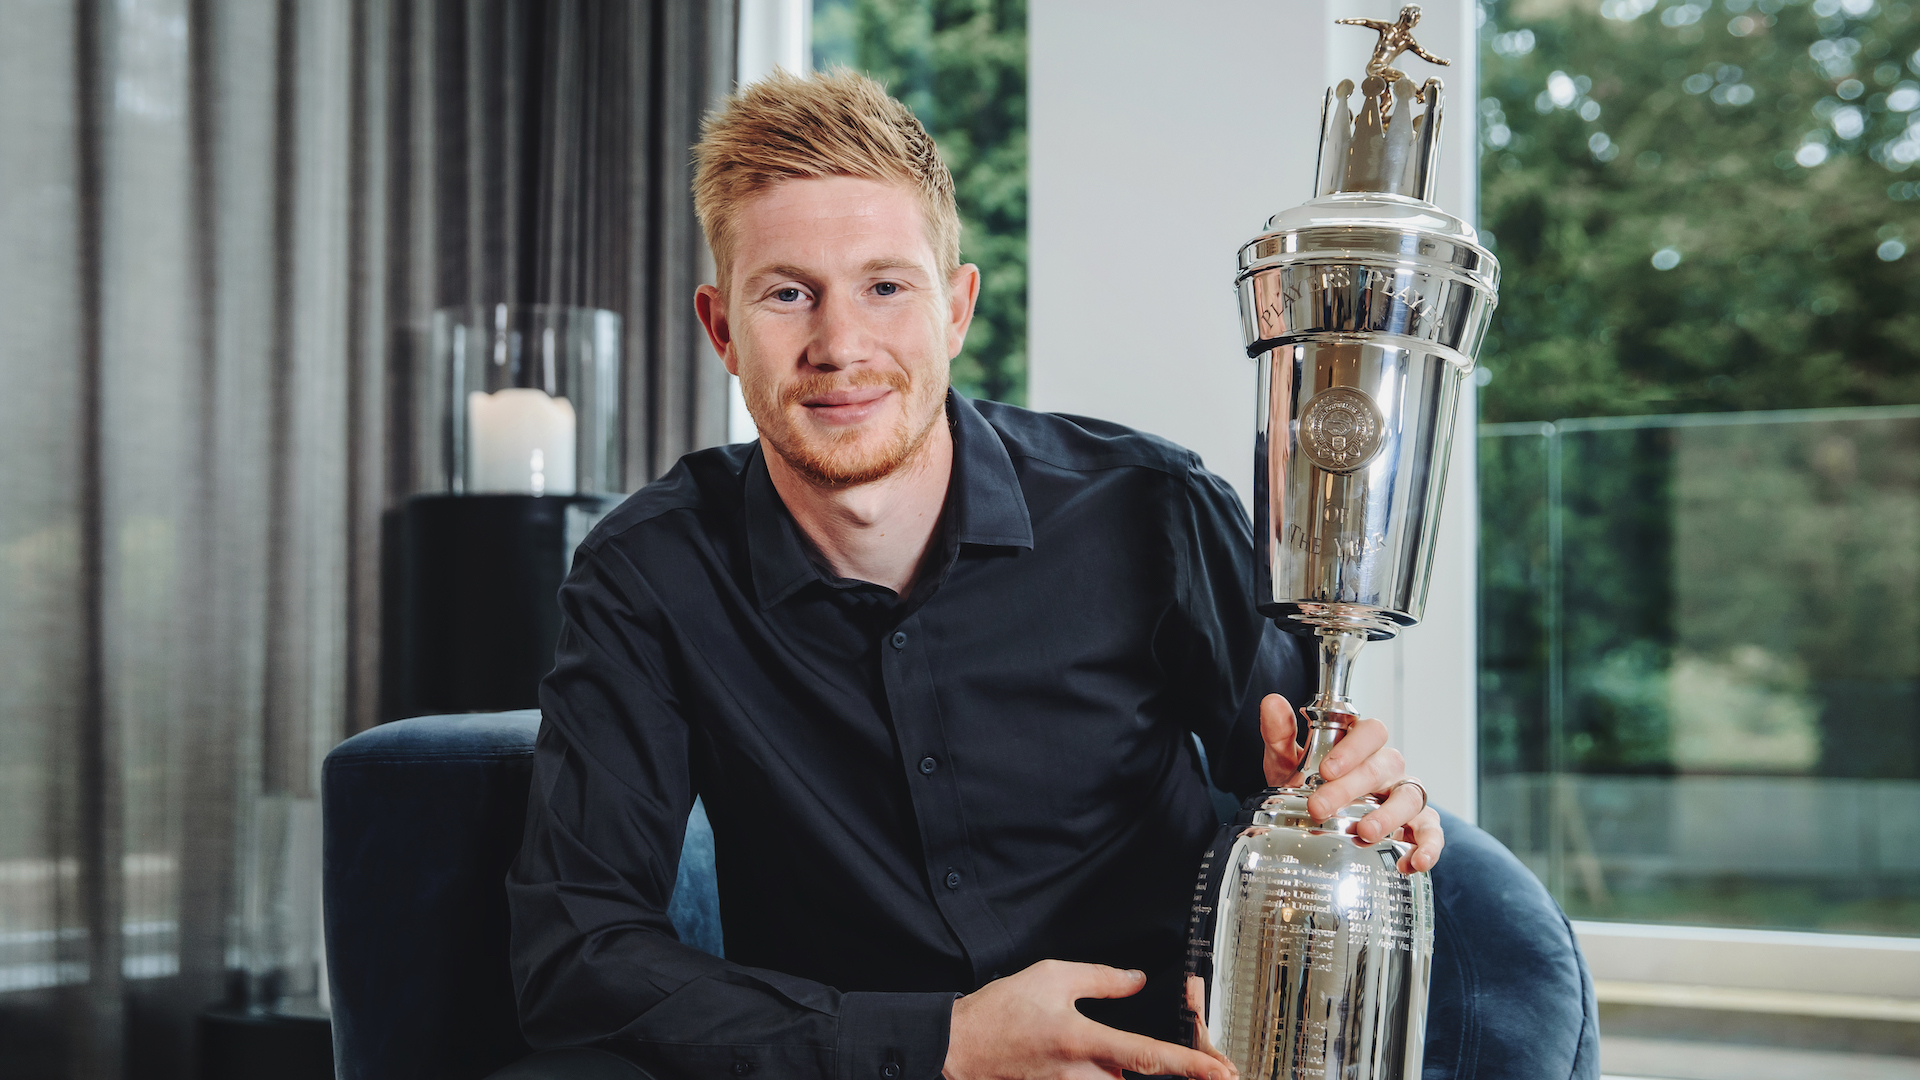 Man City midfielder De Bruyne beats Liverpool stars to PFA Player of the Year award